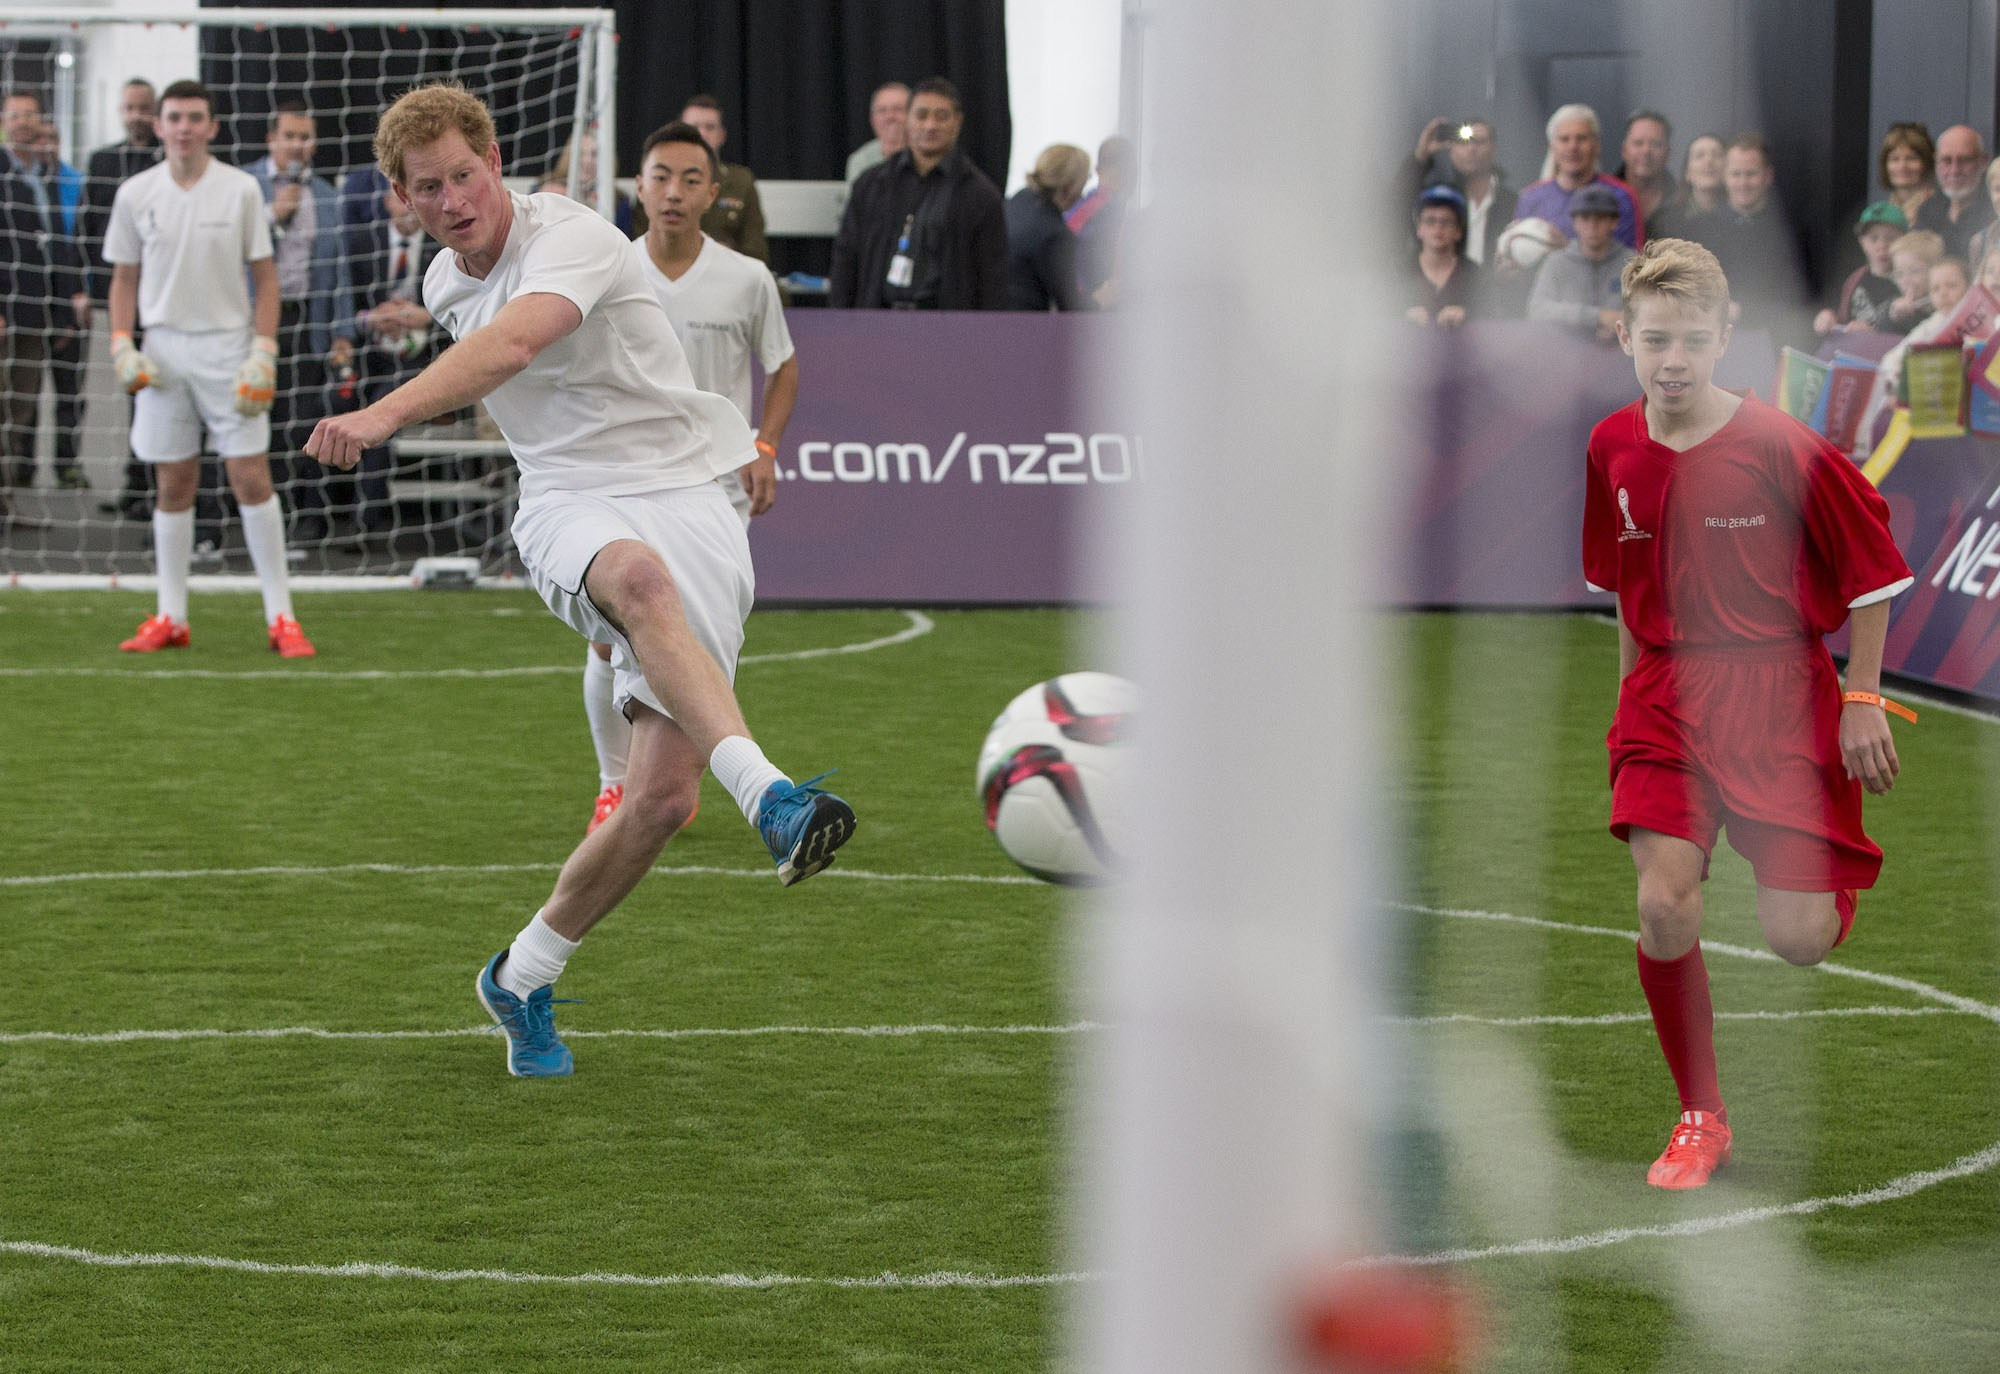 Prince Harry playing soccer